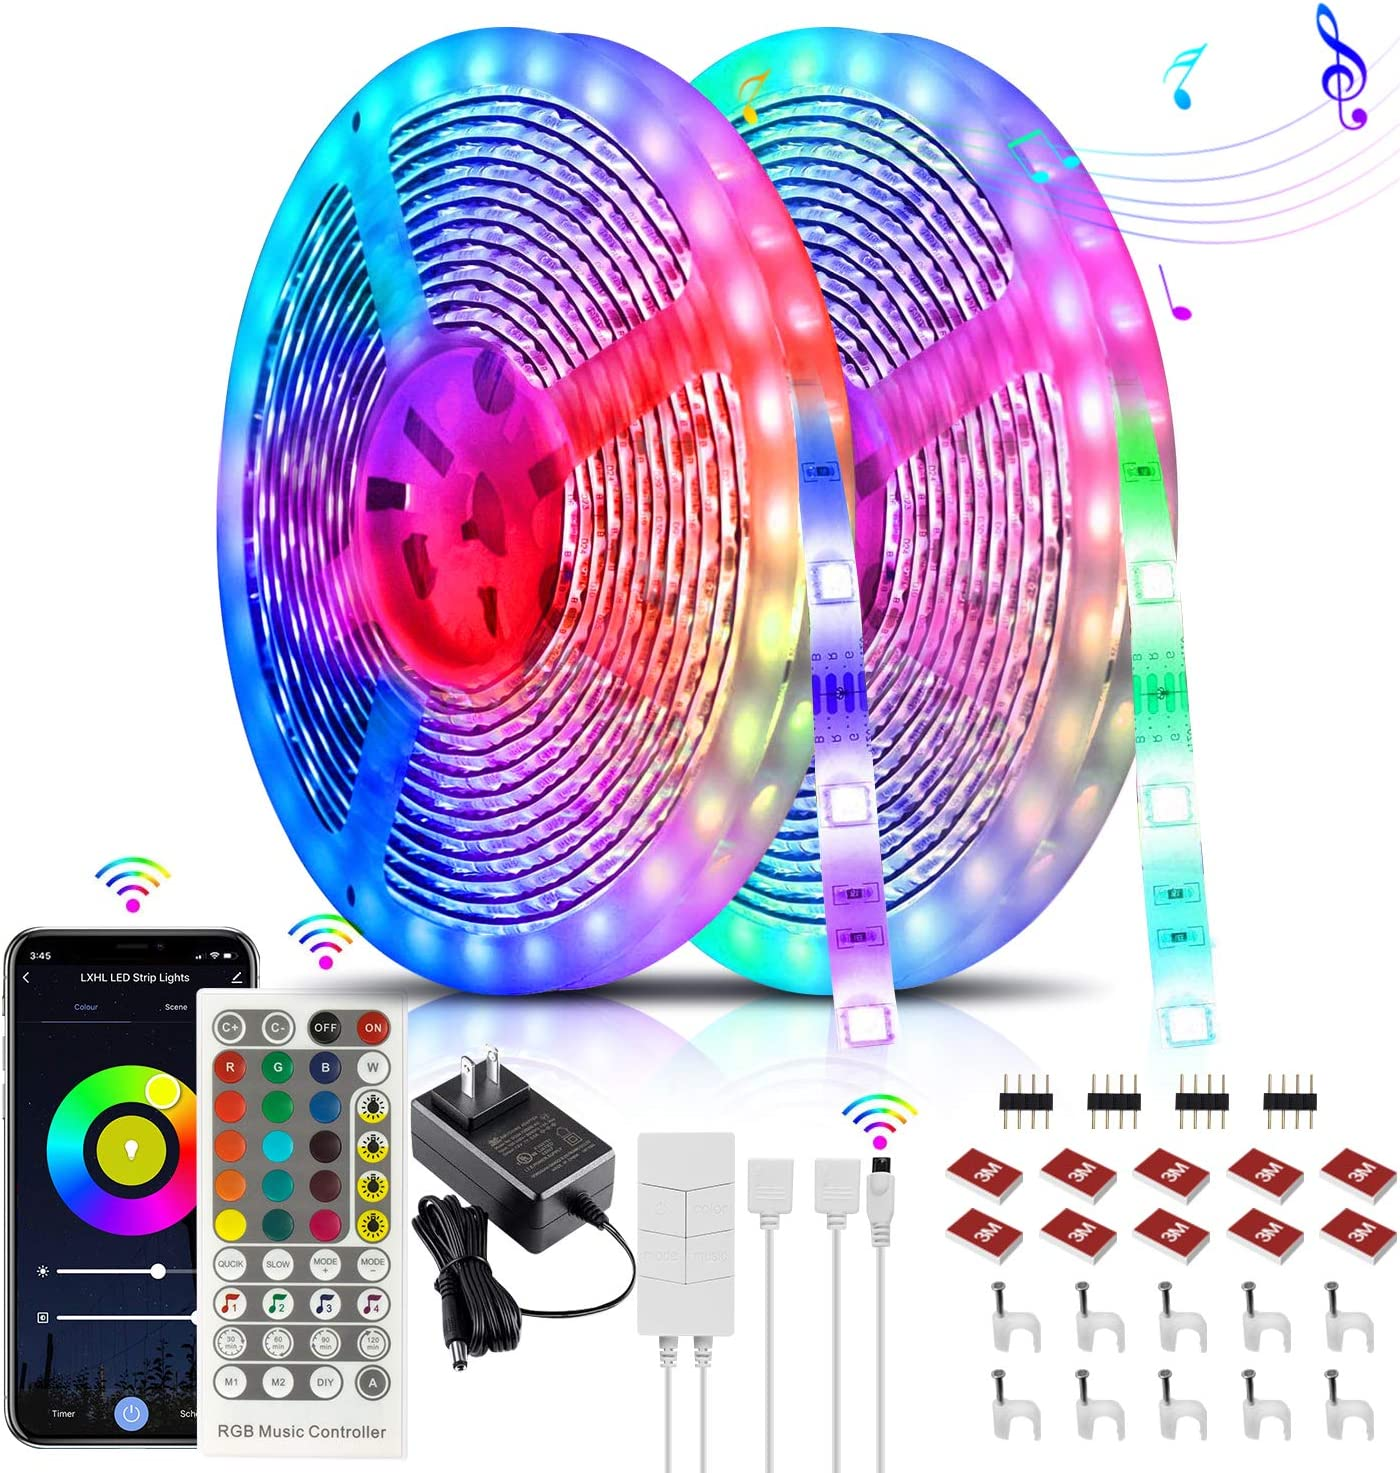 32.8ft LED Strip Lights Works with Alexa, Google Home with 7 Scenes Mode, Bluetooth, App Control, RGB Color LED Lights, Waterproof Smart Alexa LED Strip for Home, Kitchen, TV, Party (2x16.4Ft)